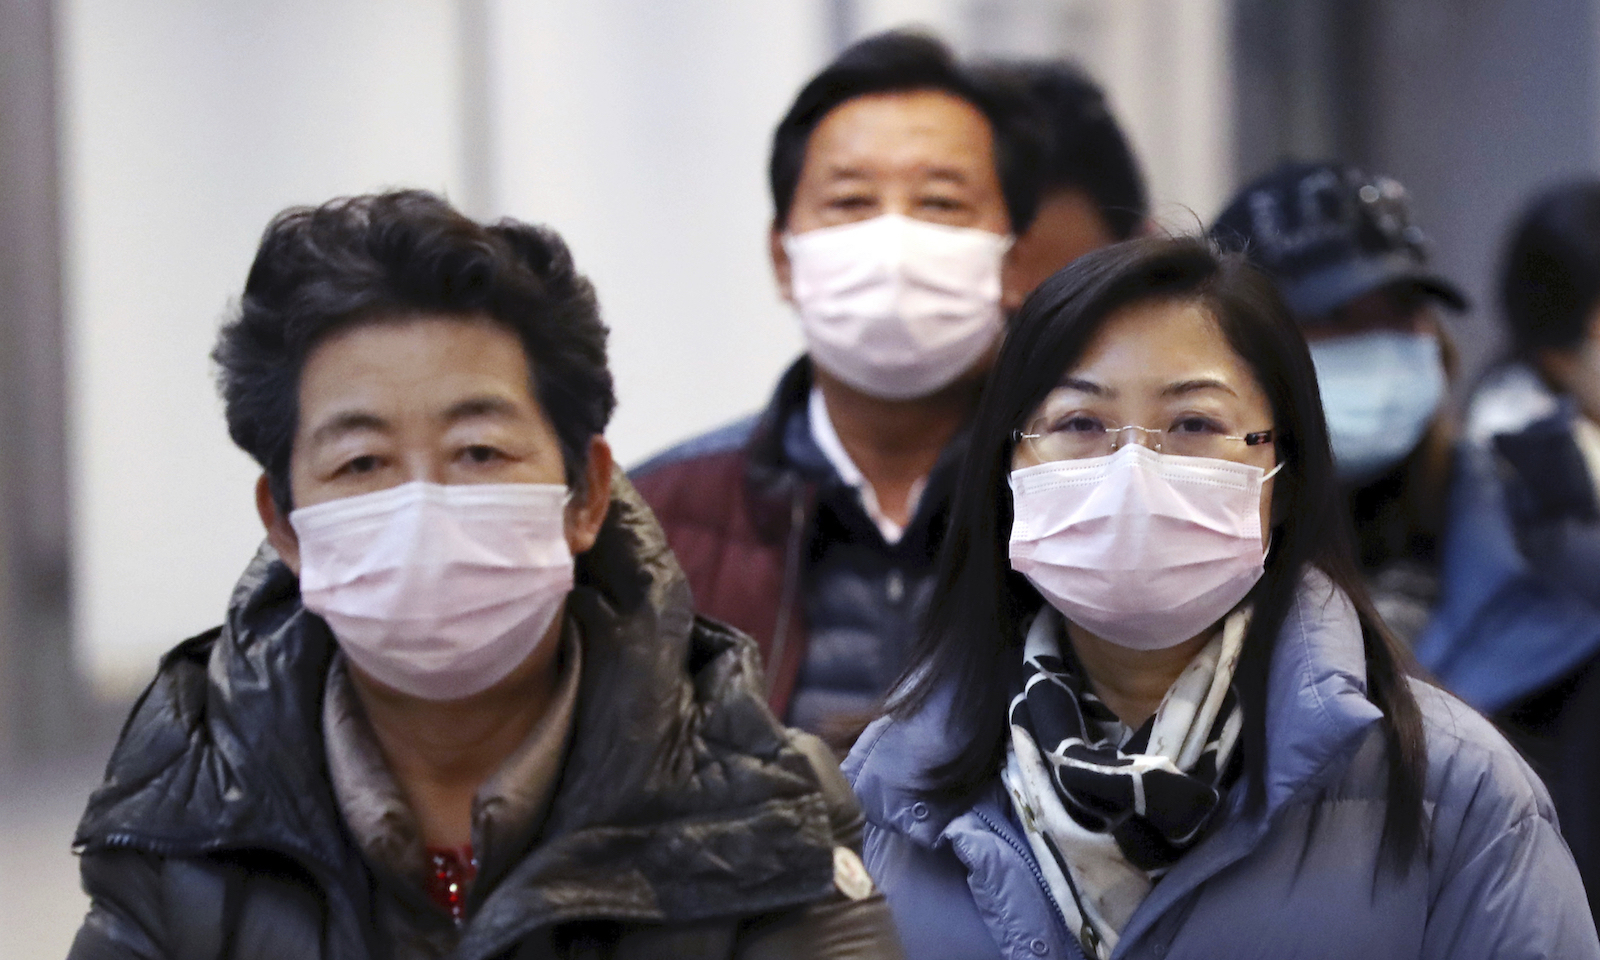 Medical The Wuhan Front Is Coronavirus Latest For